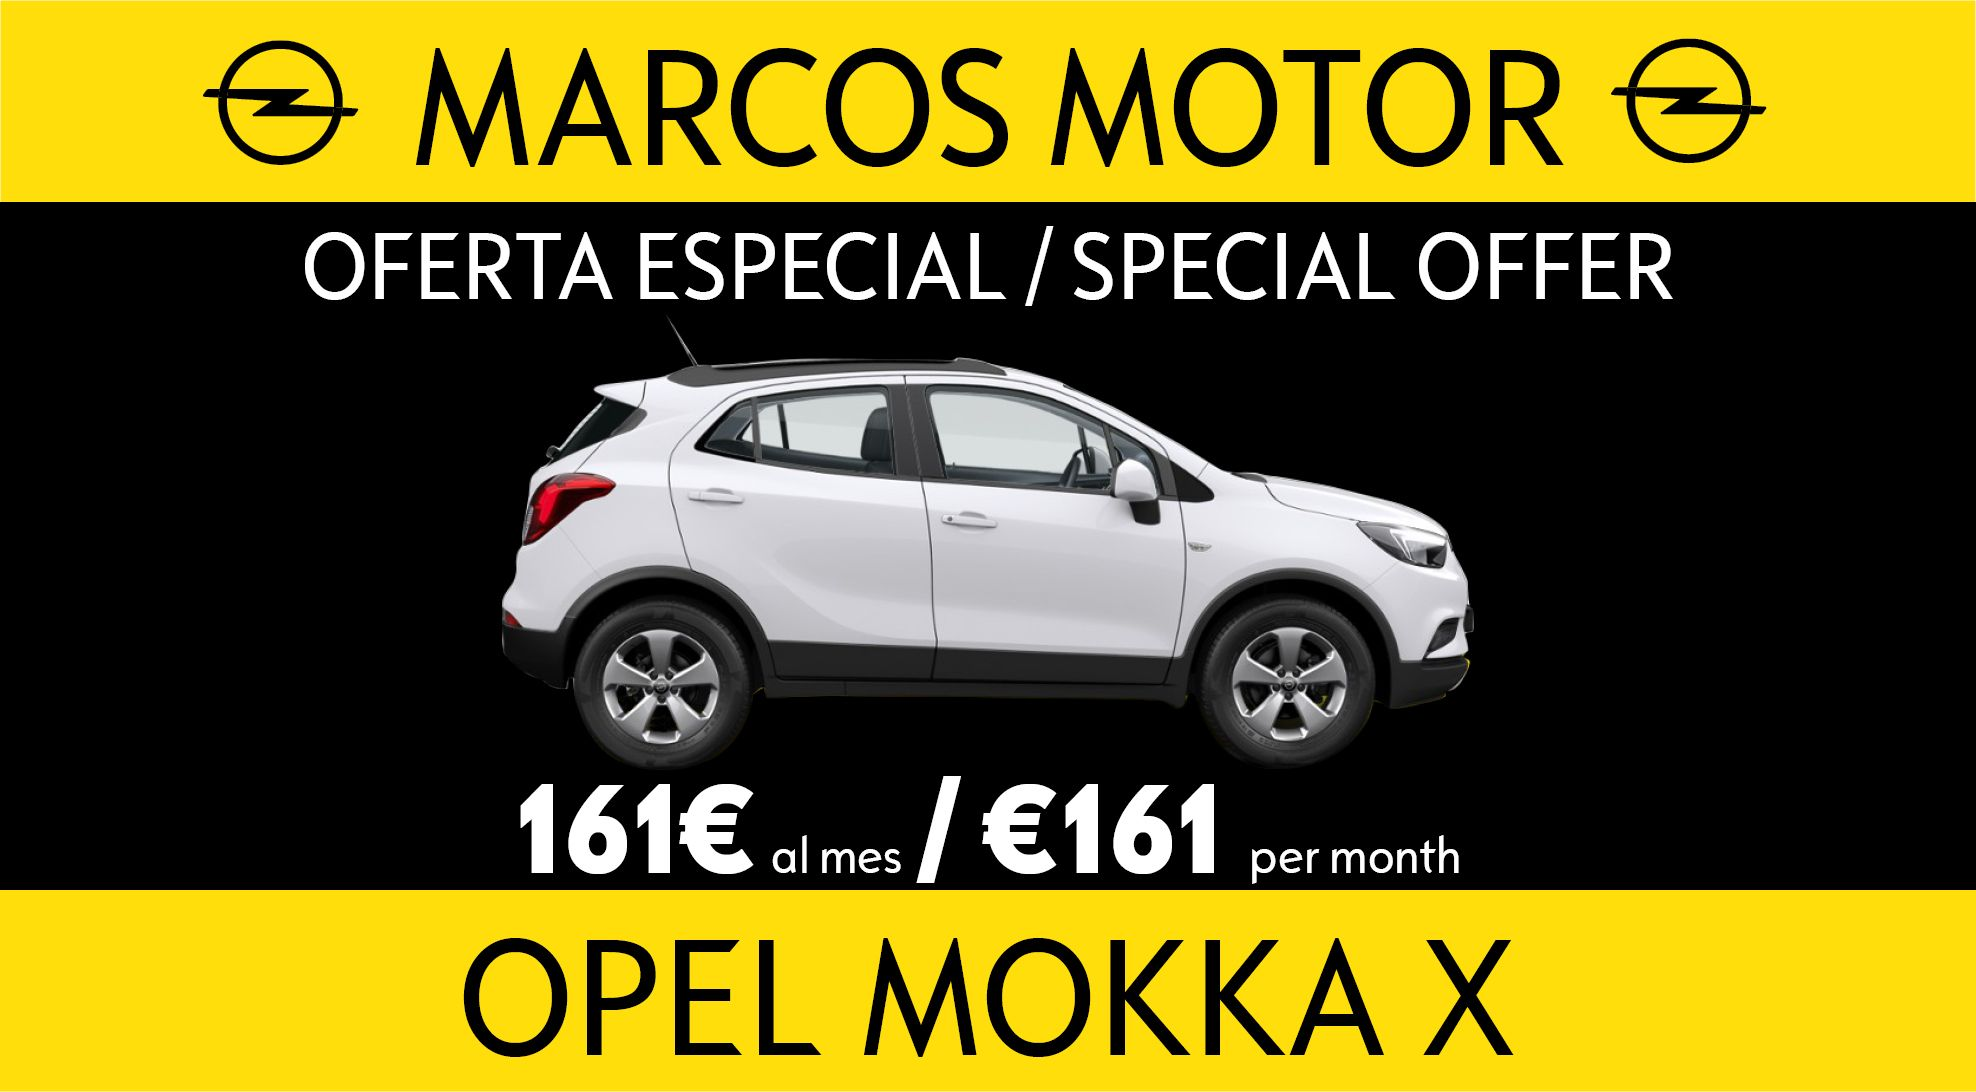 Opel Mokka Offer €161 per month